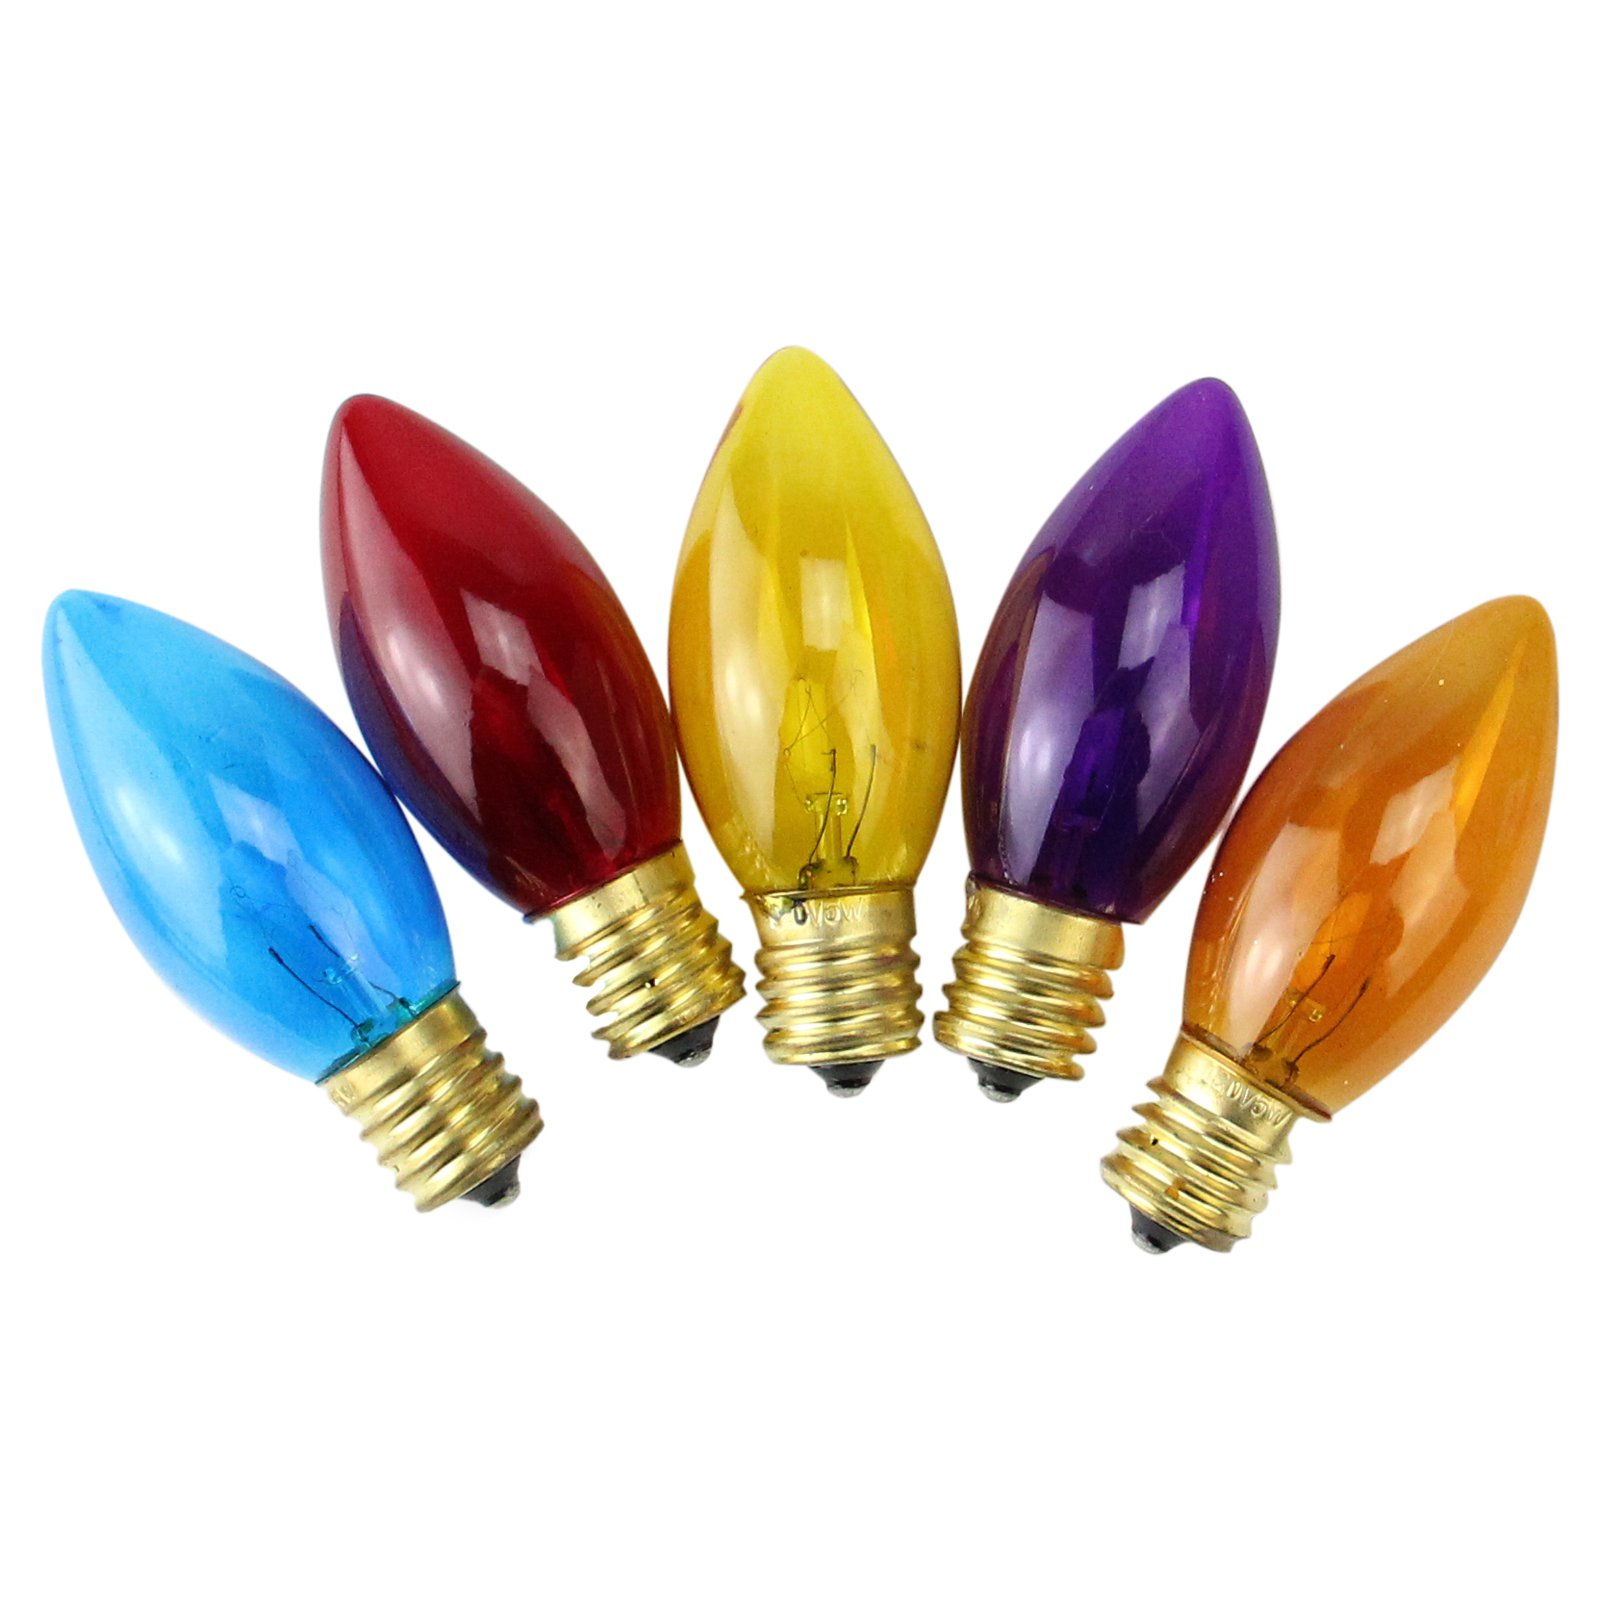 Northlight 25 ct. Incandescent C9 Christmas Replacement Bulbs